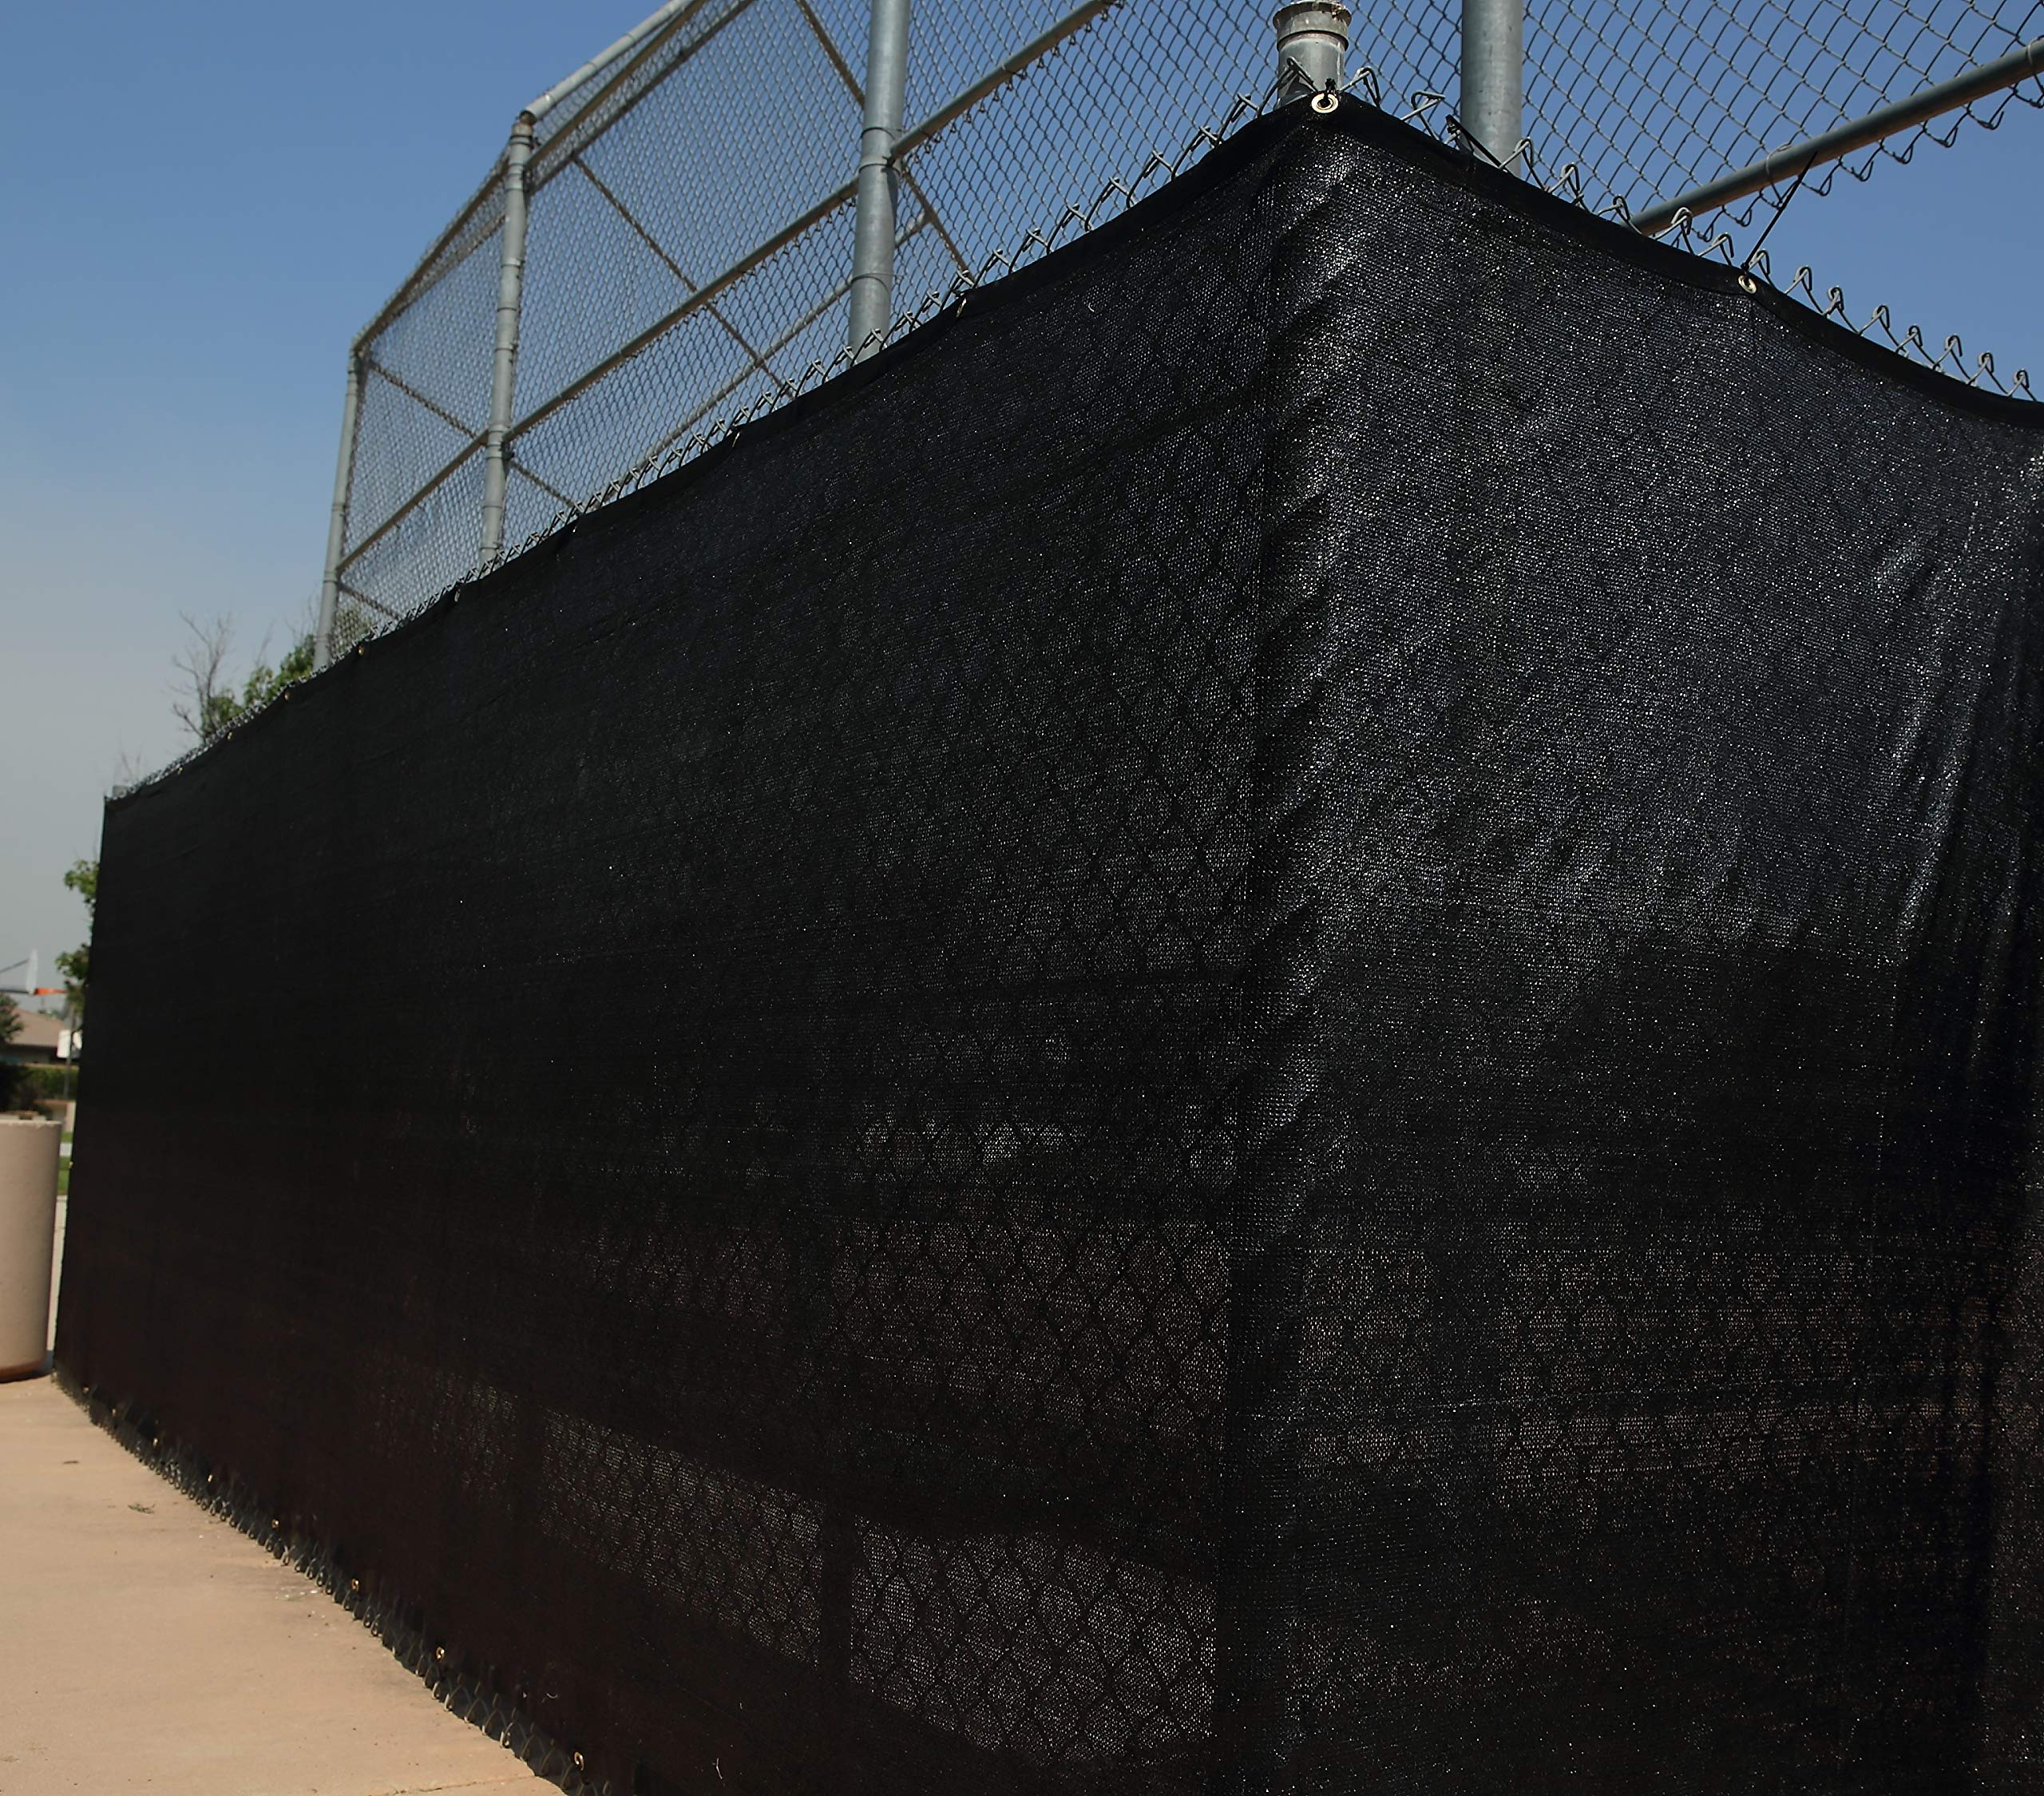 Heavy Duty 6 ft. X 50 ft. Privacy Windscreen Fence Screen Mesh Tarps W/Binding and Grommets (1, Black)